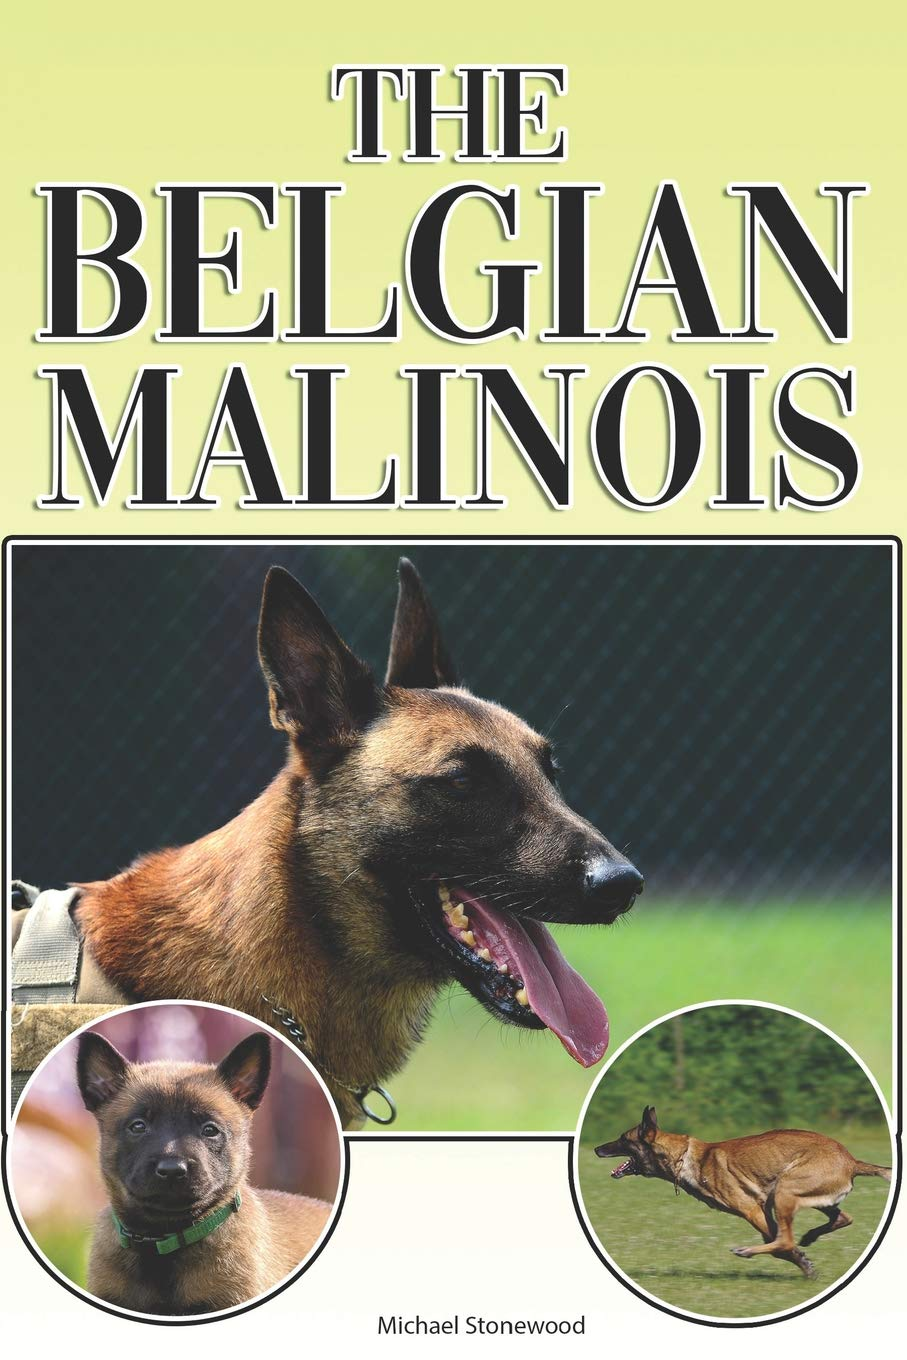 The Belgian Malinois: A Complete and Comprehensive Beginners Guide to: Buying, Owning, Health, Grooming, Training…